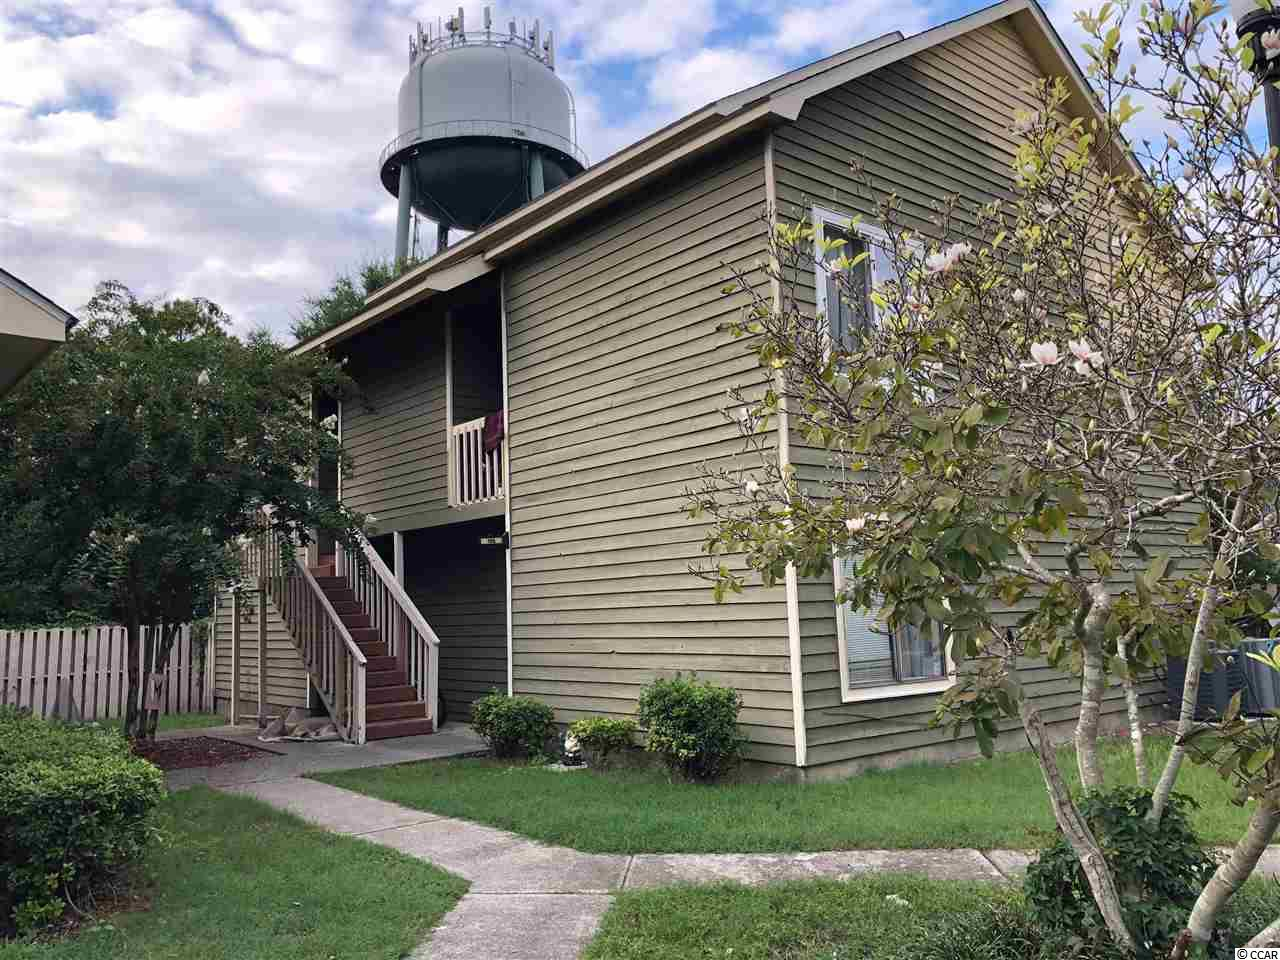 One bedroom one bath unit in heart of Myrtle Beach, don't miss this opportunity as at this price as it won't last long.  Close to everything within walking distance and just a few blocks from the beach!